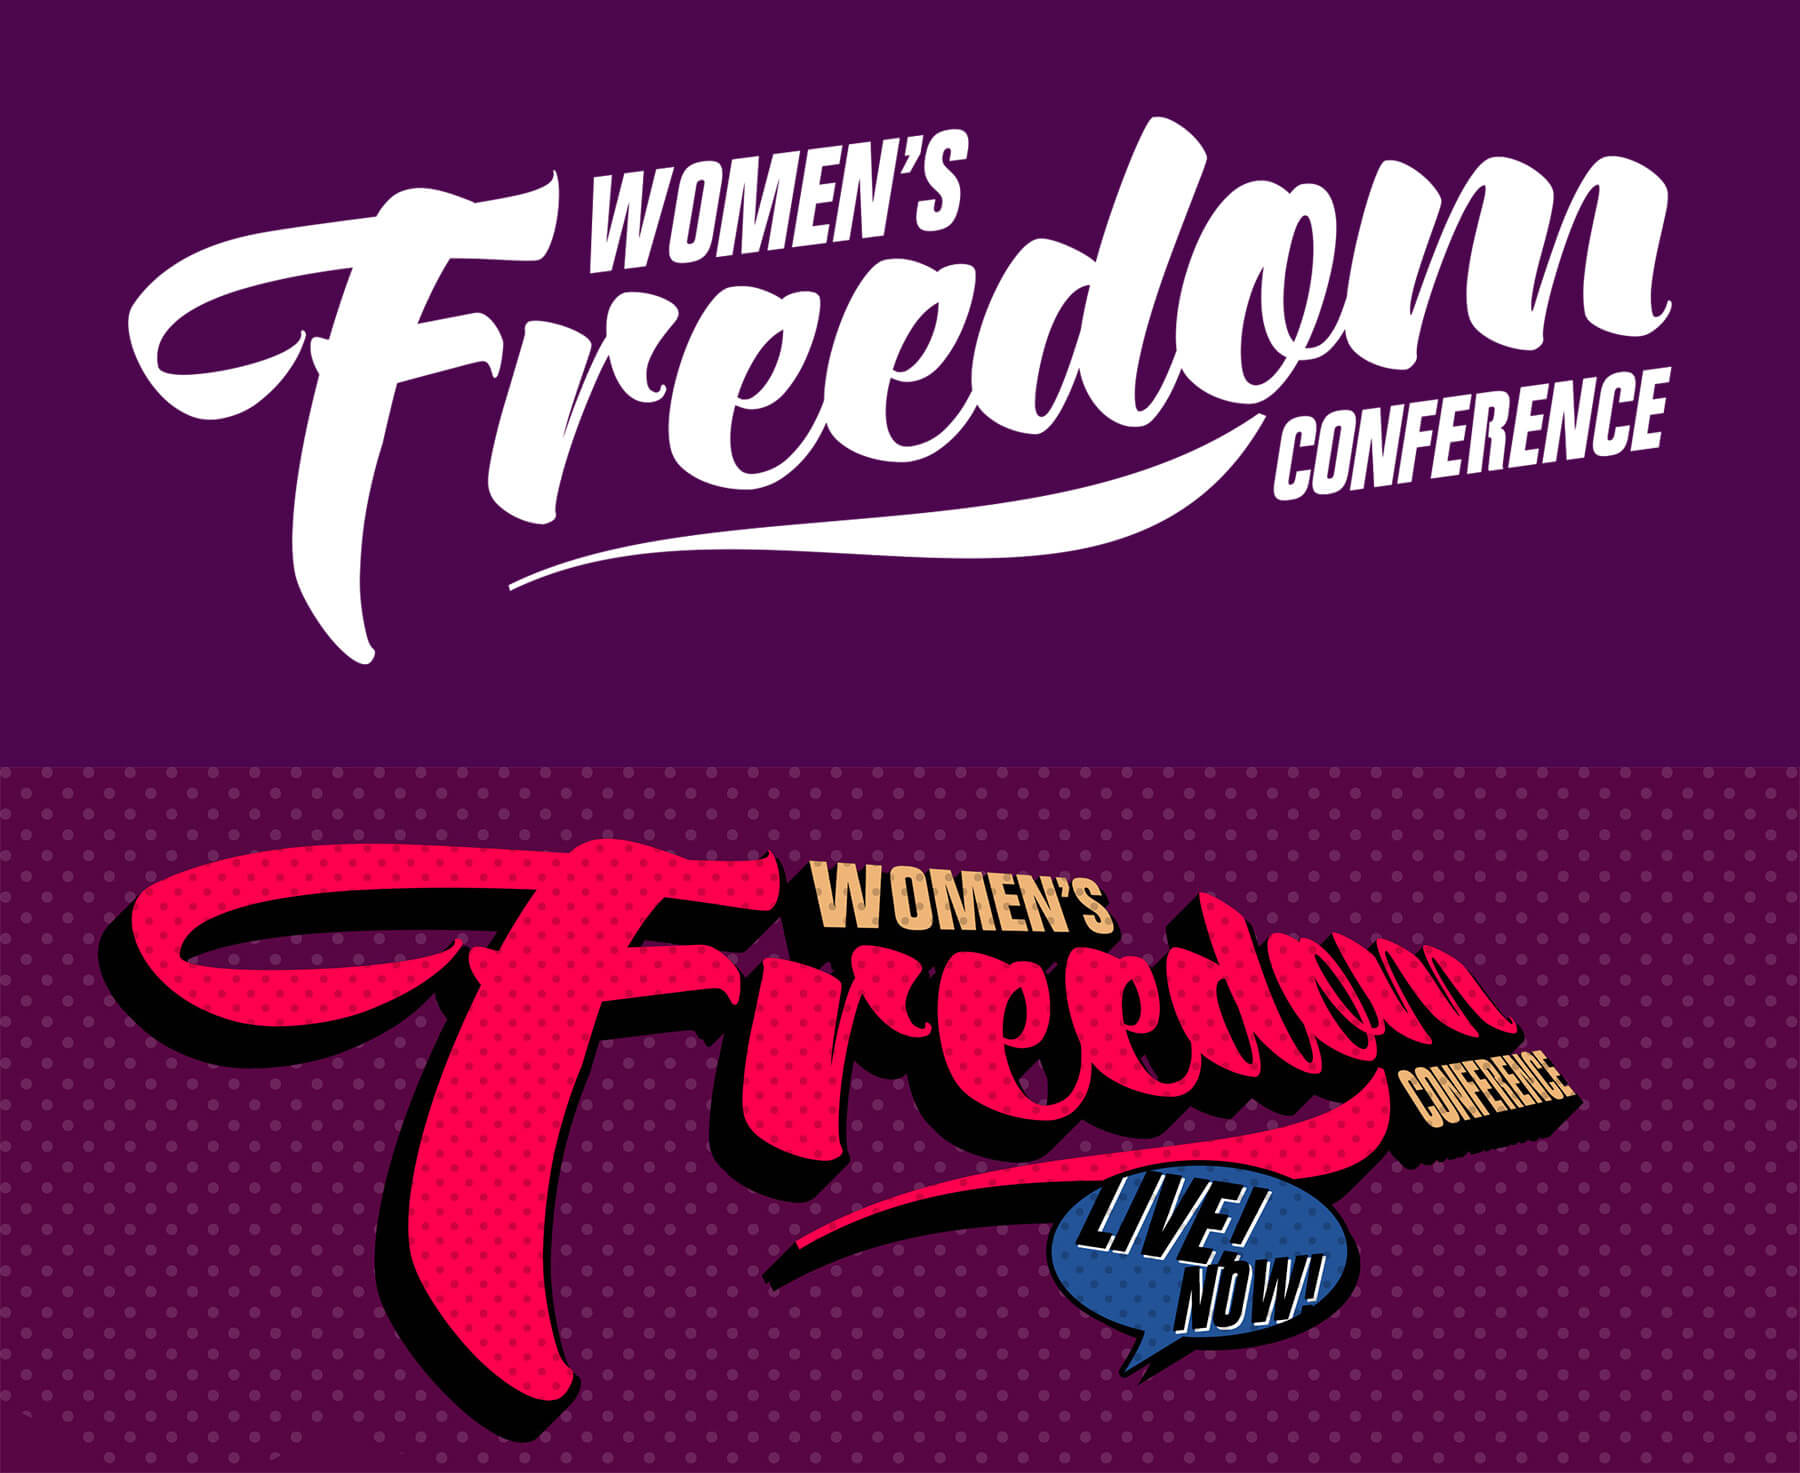 Women's Freedom Conference logos